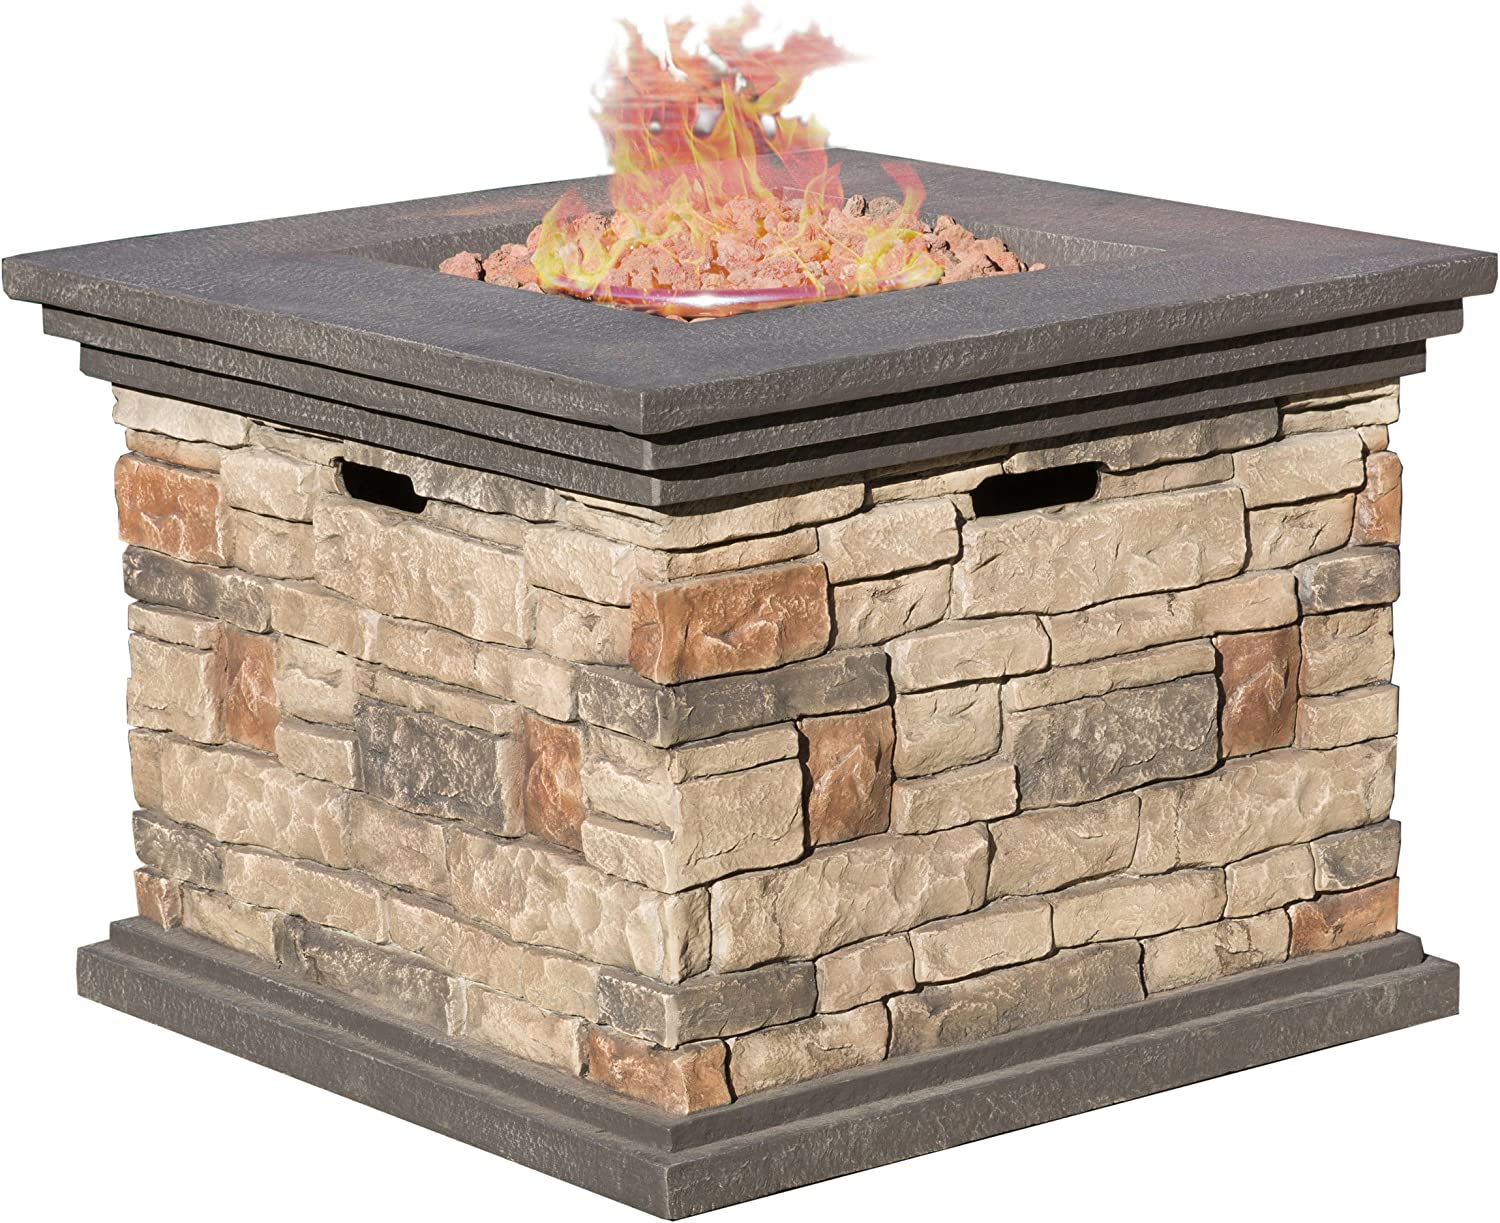 Christopher Knight Home 296587 Crawford Outdoor Square Propane Fire Pit with, Stone